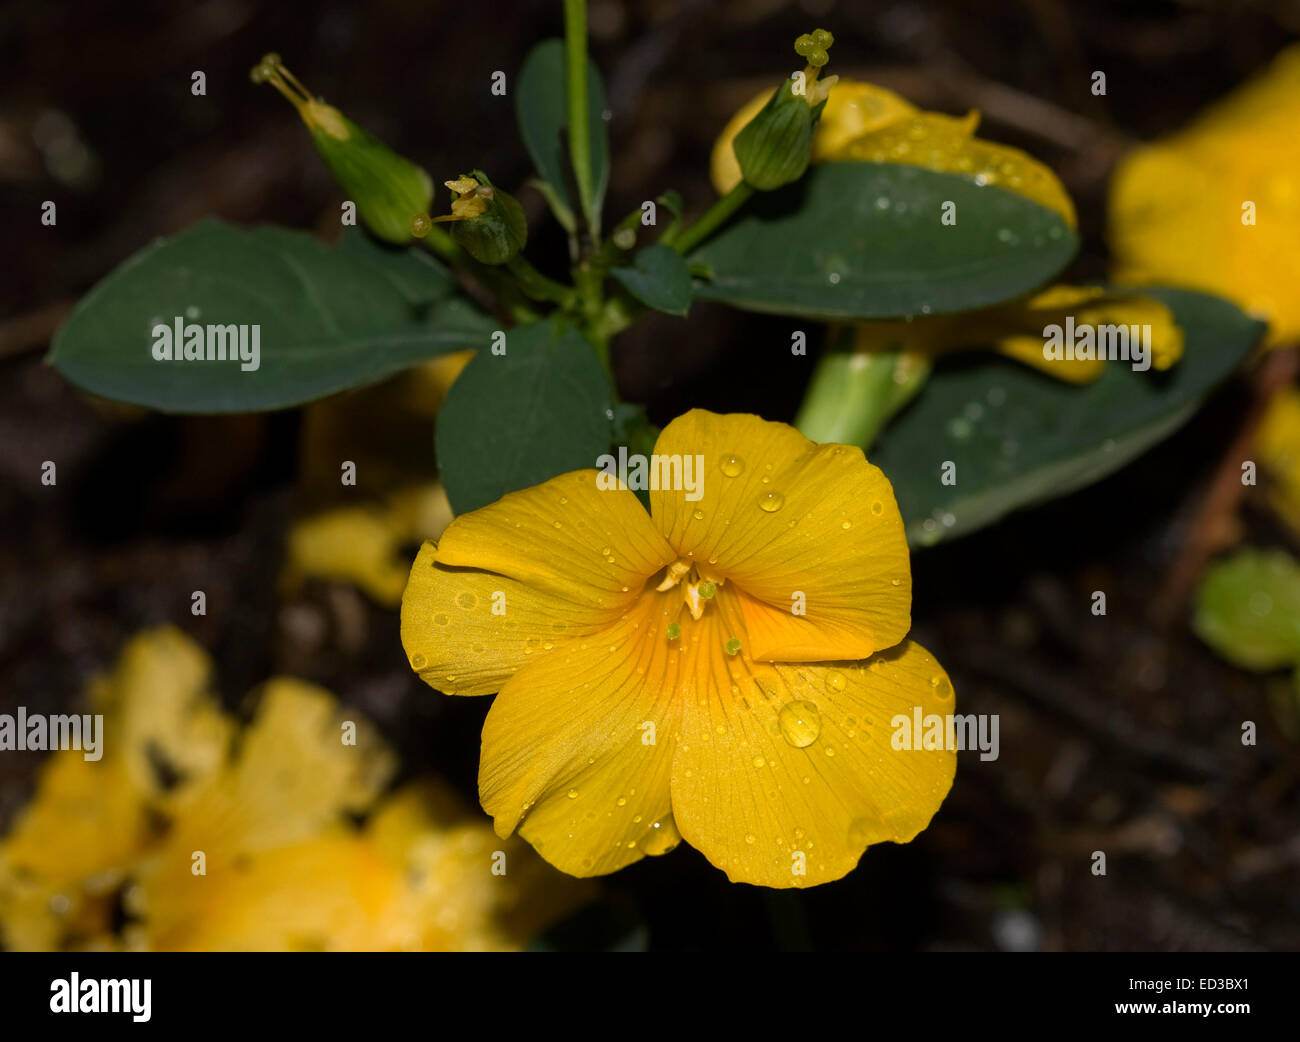 Golden Yellow Flower With Raindrops On Petals Dark Green Leaves Of